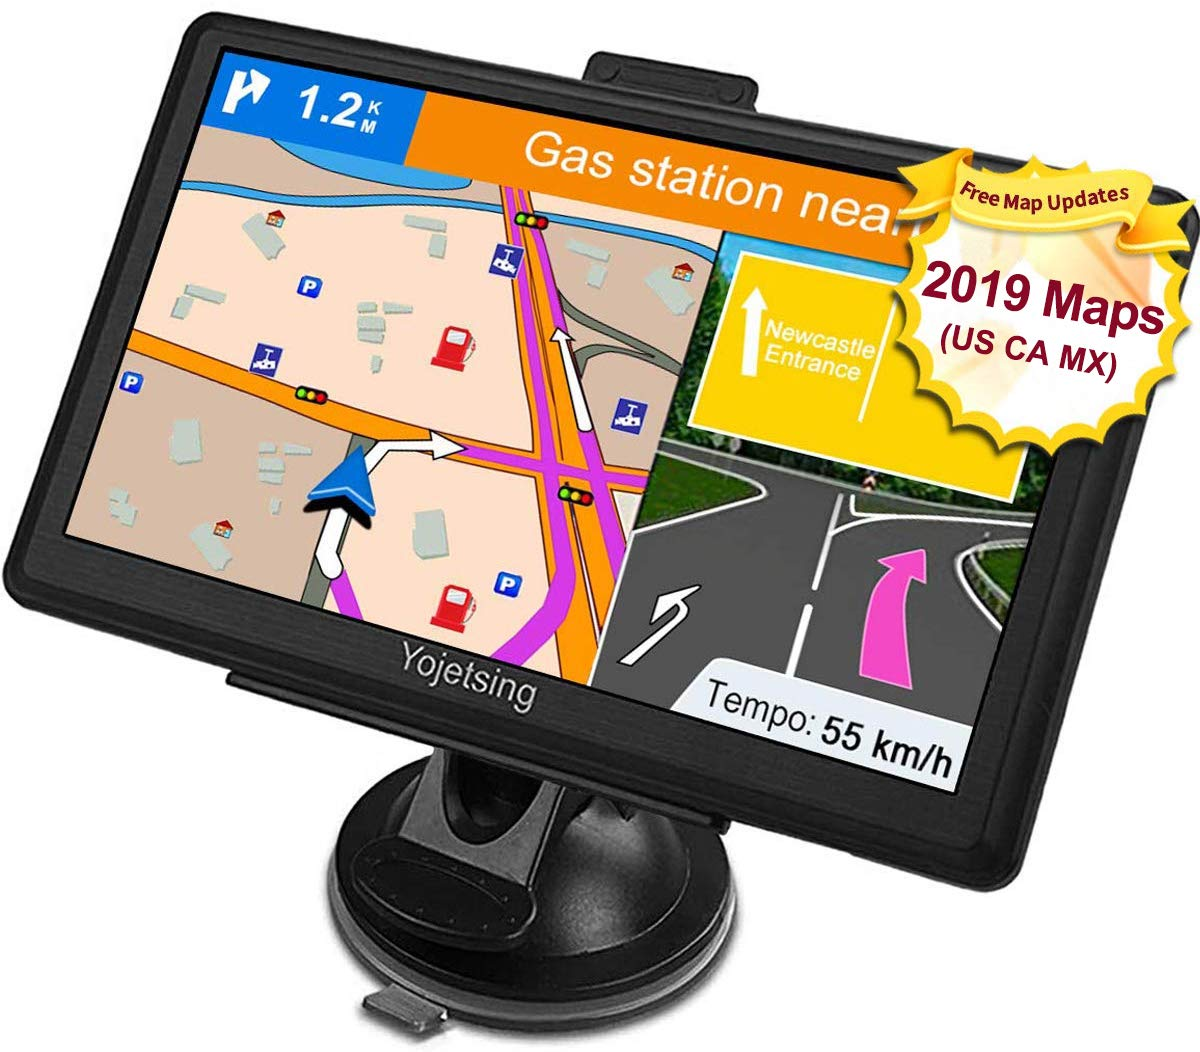 YoJetSing GPS Navigation for Car, Truck GPS 7 Inch HD GPS Navigation, Built-in 256MB+8GB Vehicle Navigation System, Voice Reminding, Free Lifetime Maps, Pre-Installed 2019 USA+Canada+Mexico Maps by YoJetSing